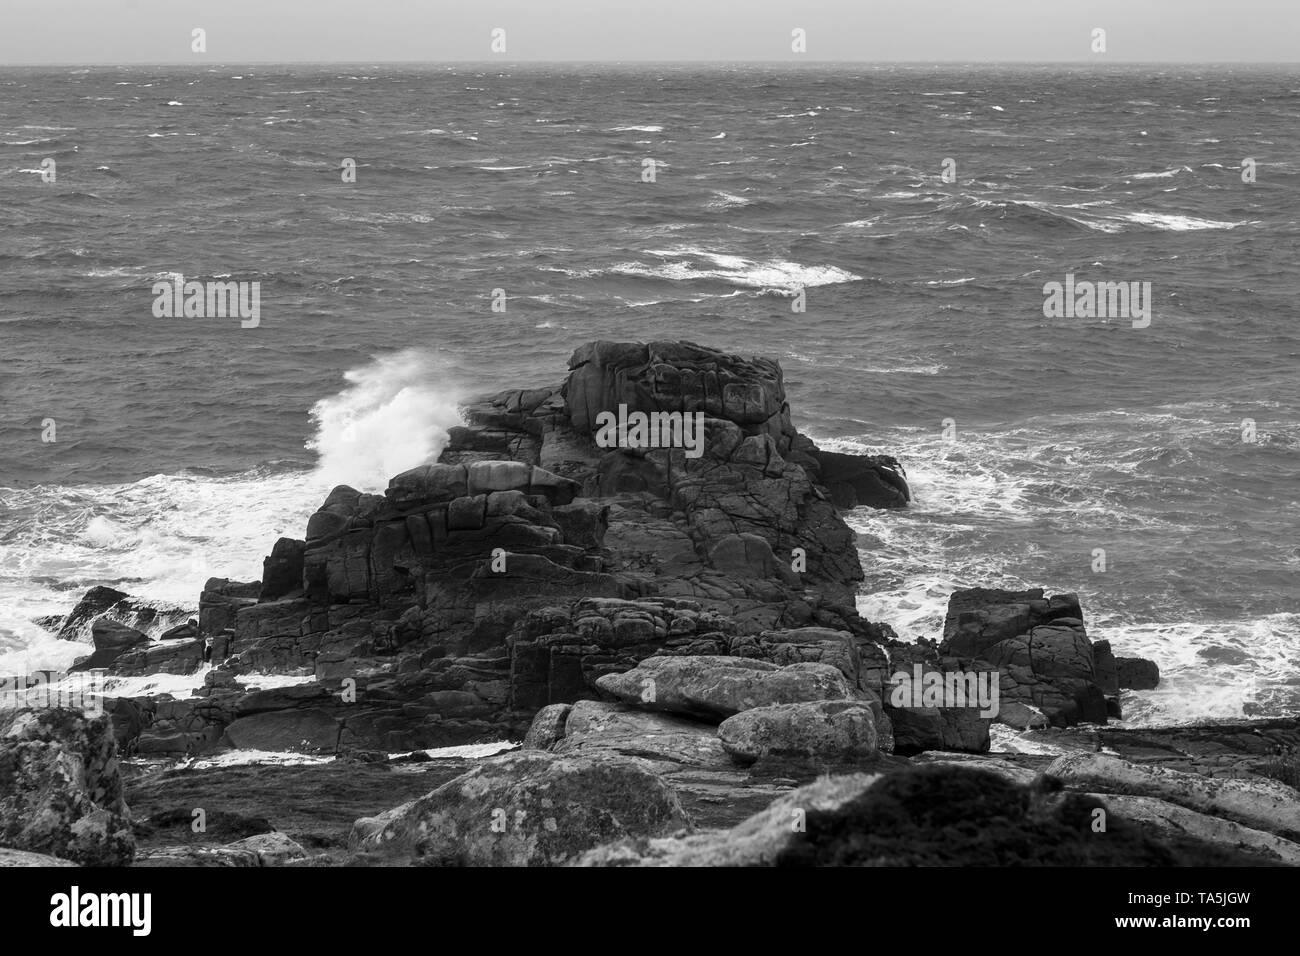 Porth Hellick Point at low tide and in a strong onshore wind, St. Mary's, Isles of Scilly, UK: black and white version - Stock Image